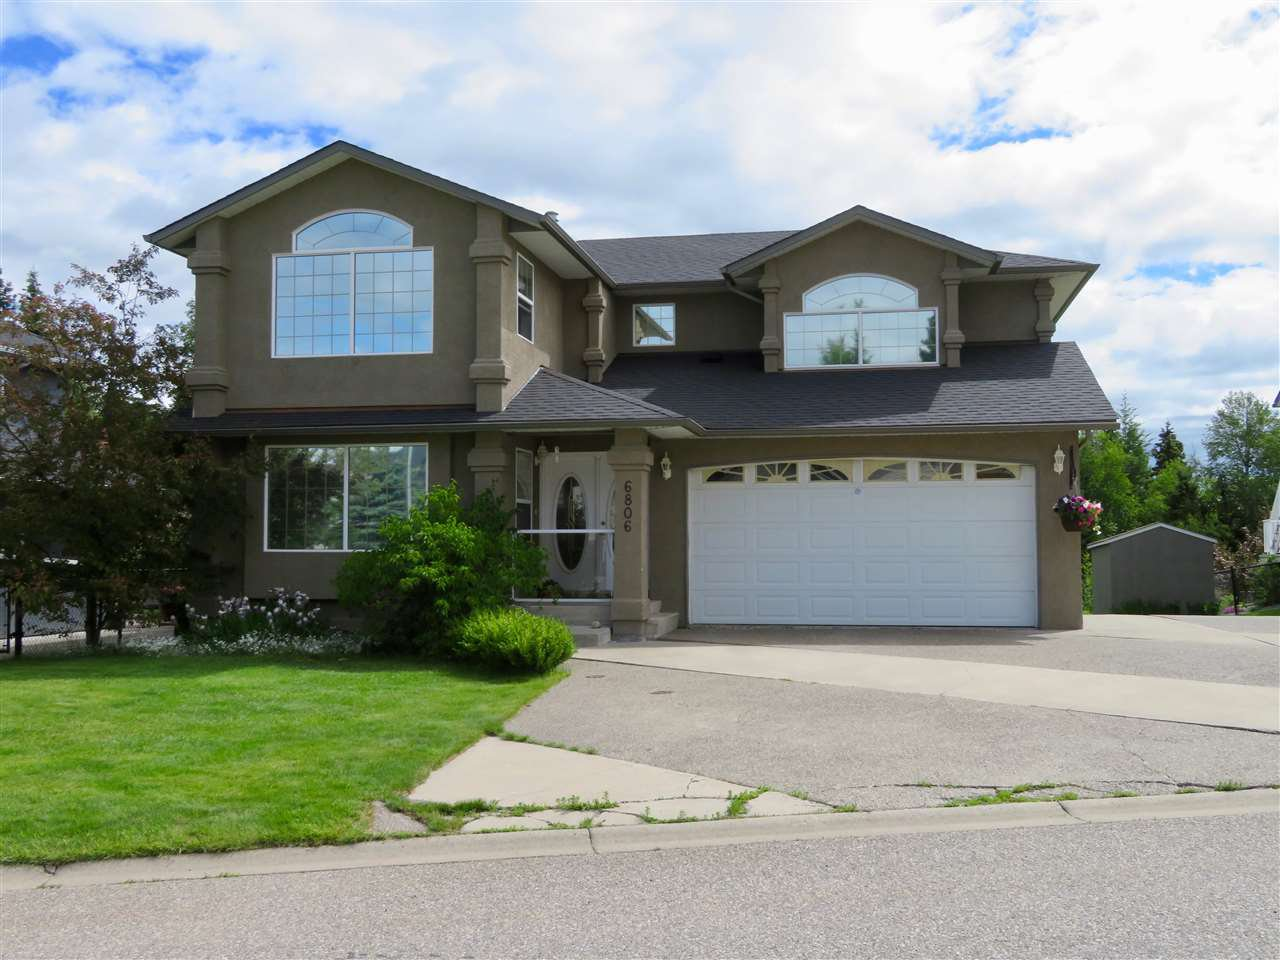 Main Photo: 6806 WESTMOUNT Drive in Prince George: Lafreniere House for sale (PG City South (Zone 74))  : MLS®# R2469612